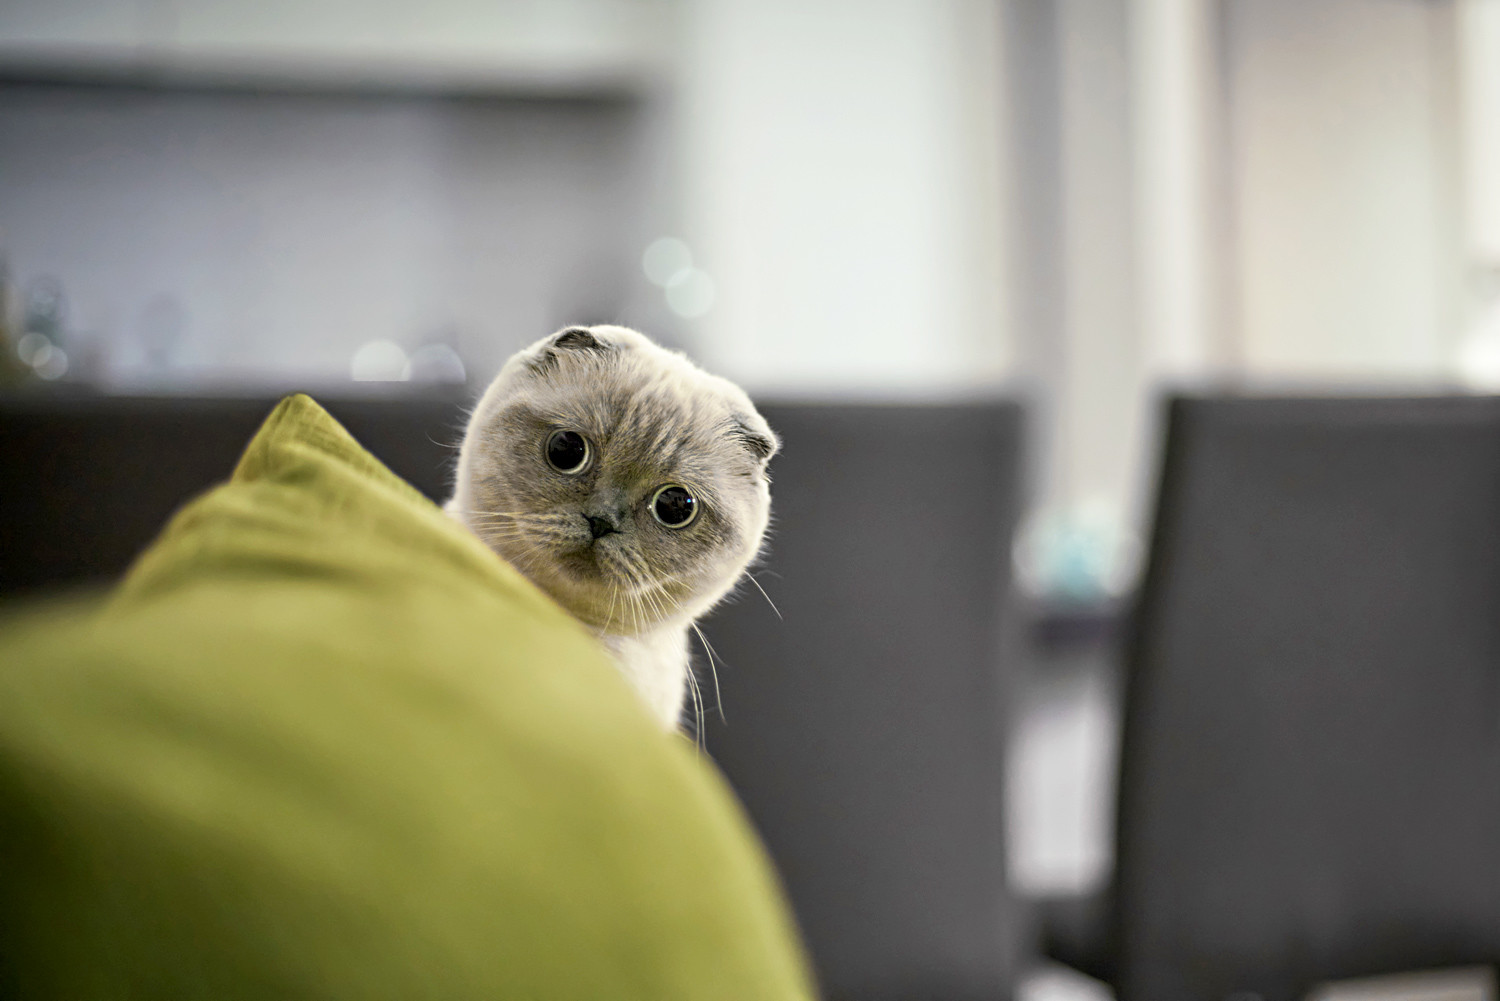 Scottish Fold cats top the searches on Avito.